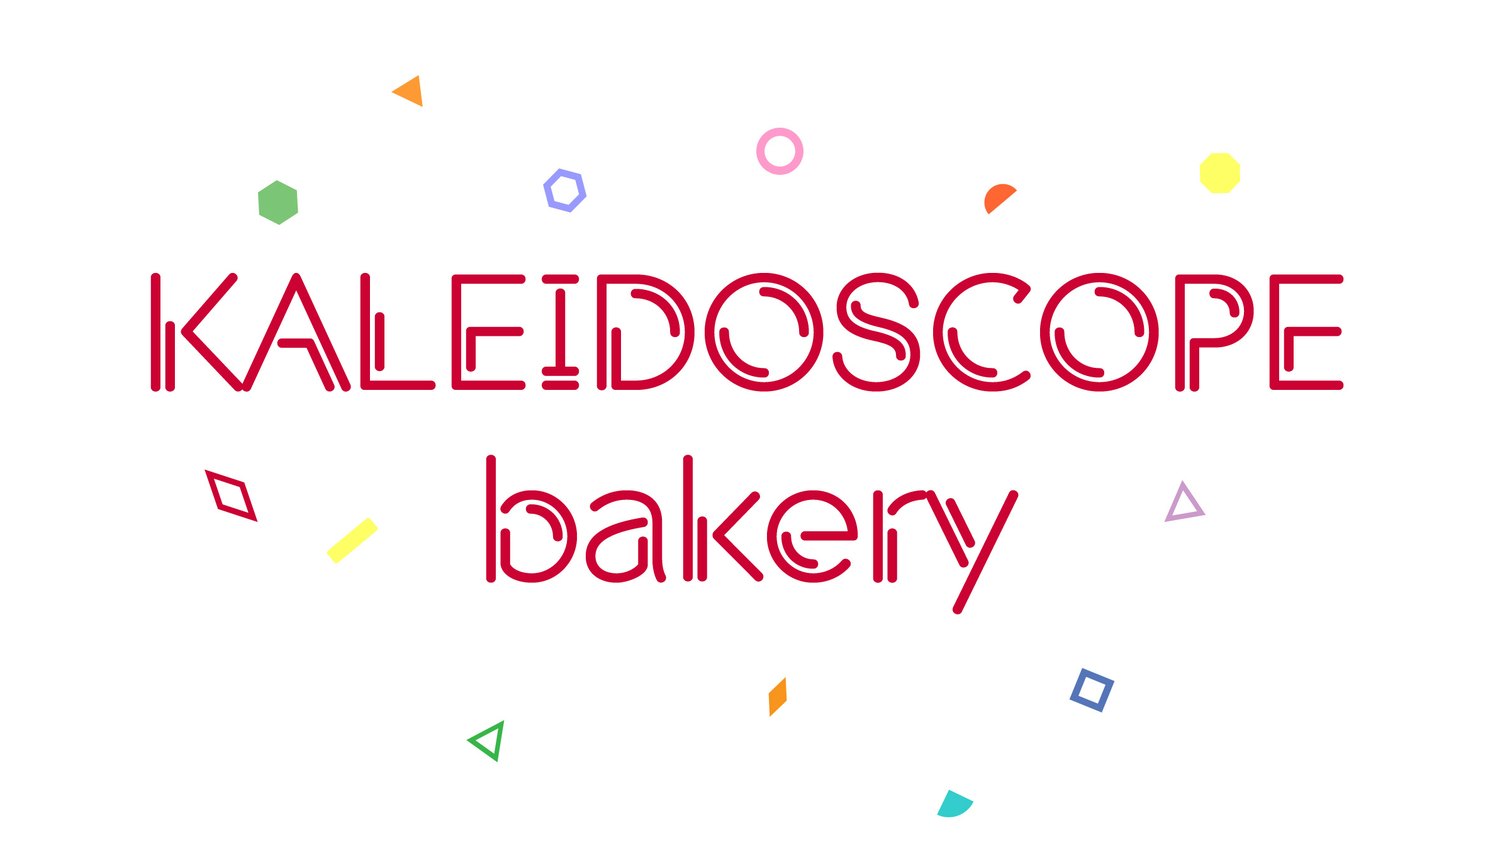 Kaleidoscope Bakery